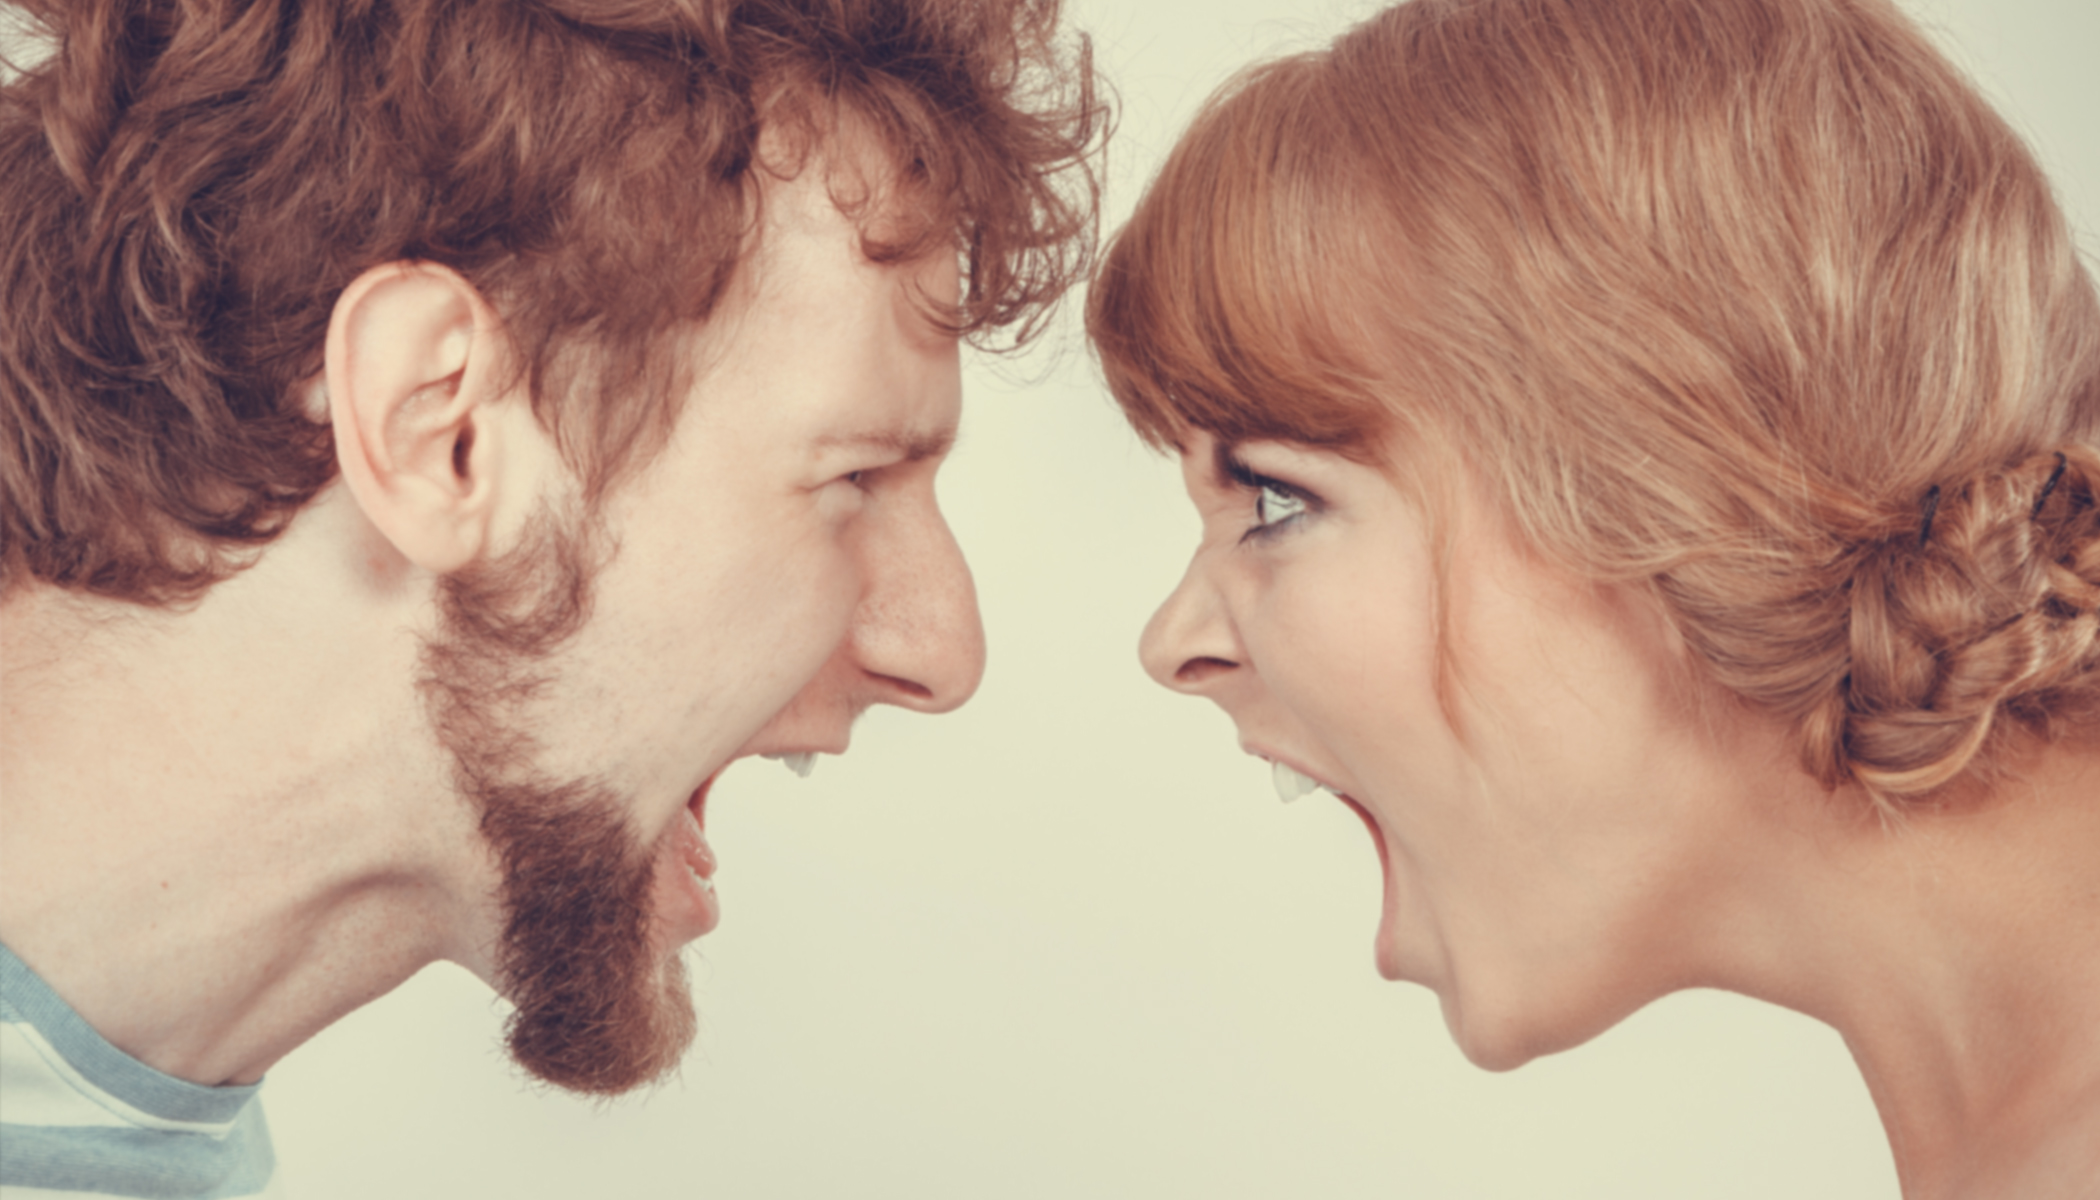 Why Do People Shout at Each Other When They Get Angry?